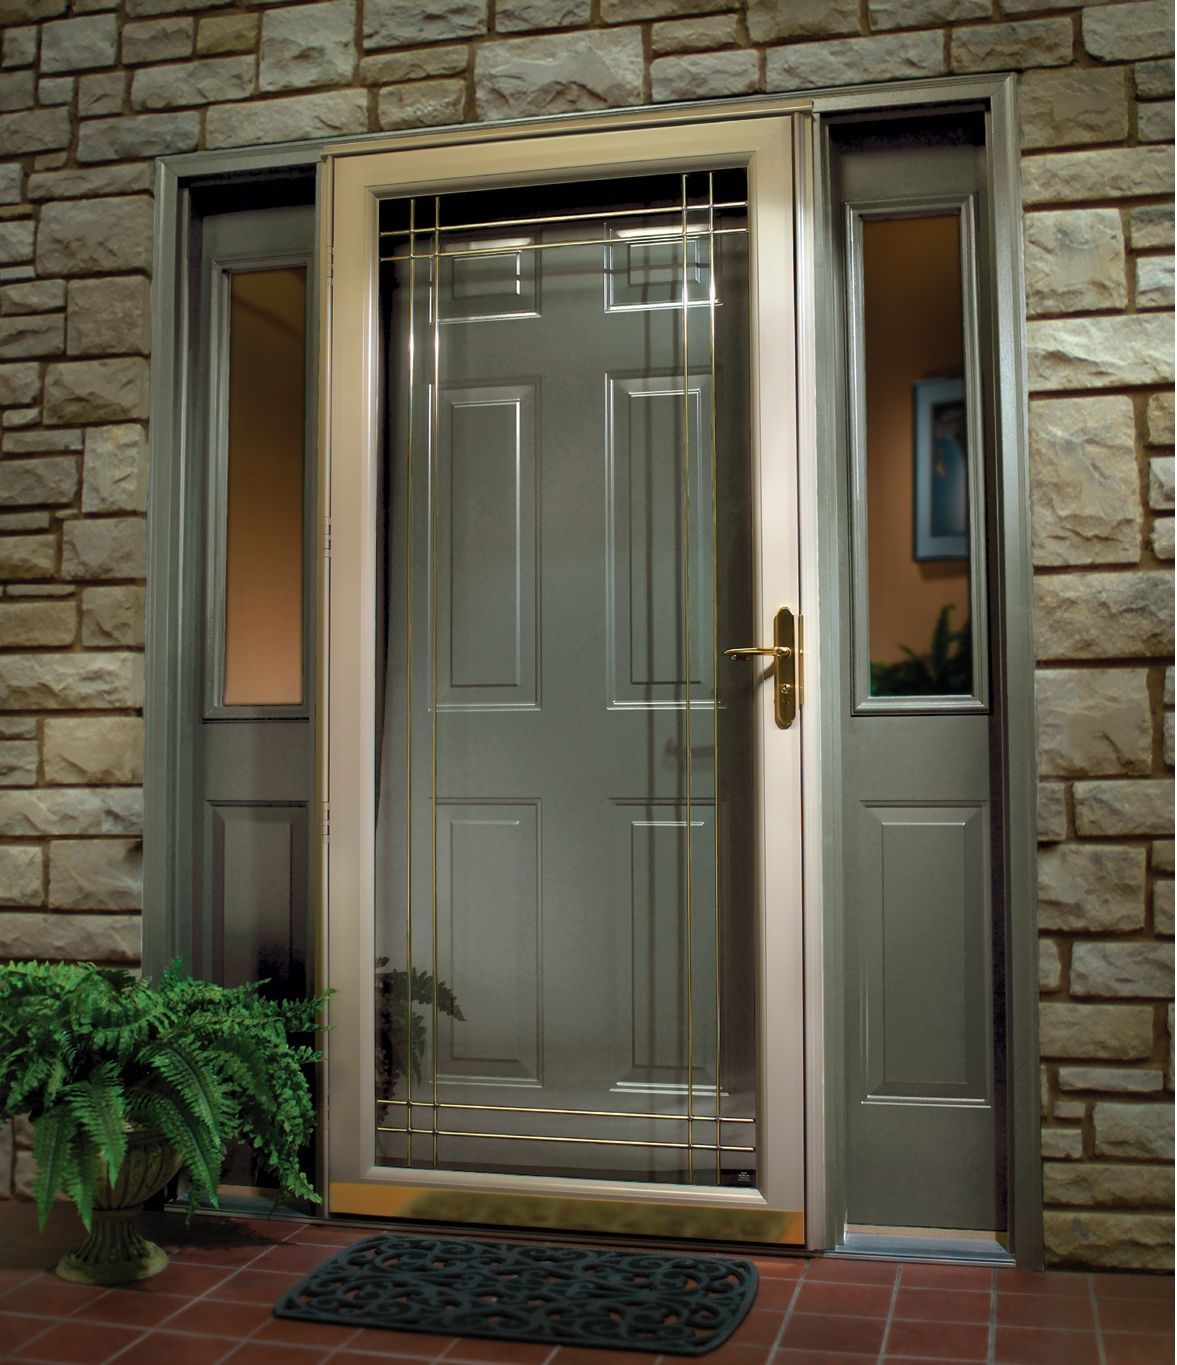 Exterior doors for homes front door ideas front entry for House doors with windows